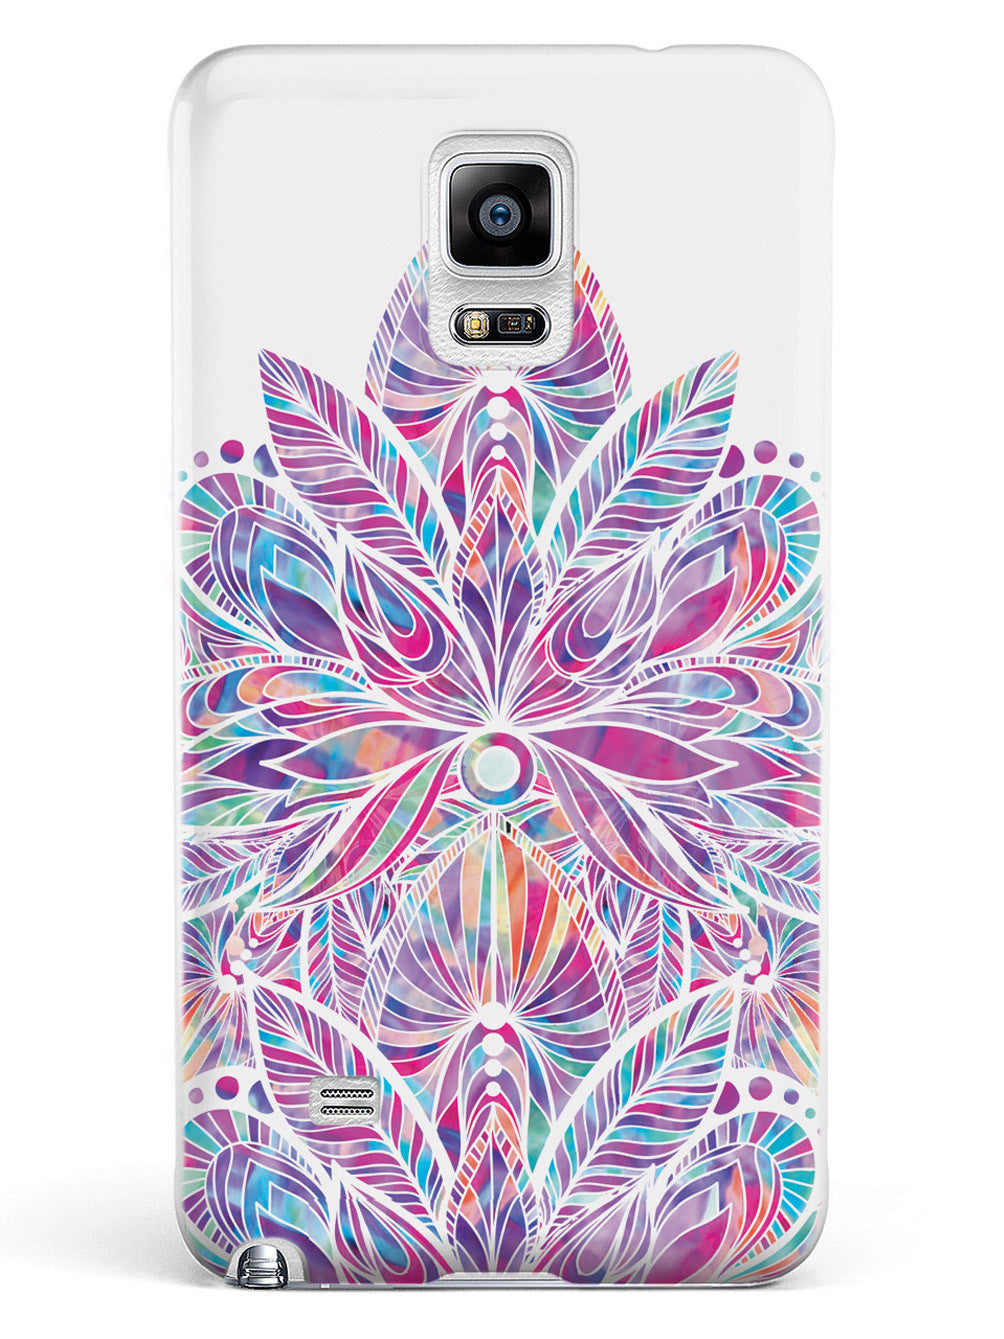 Colorful Lotus Flower Pattern - White Case